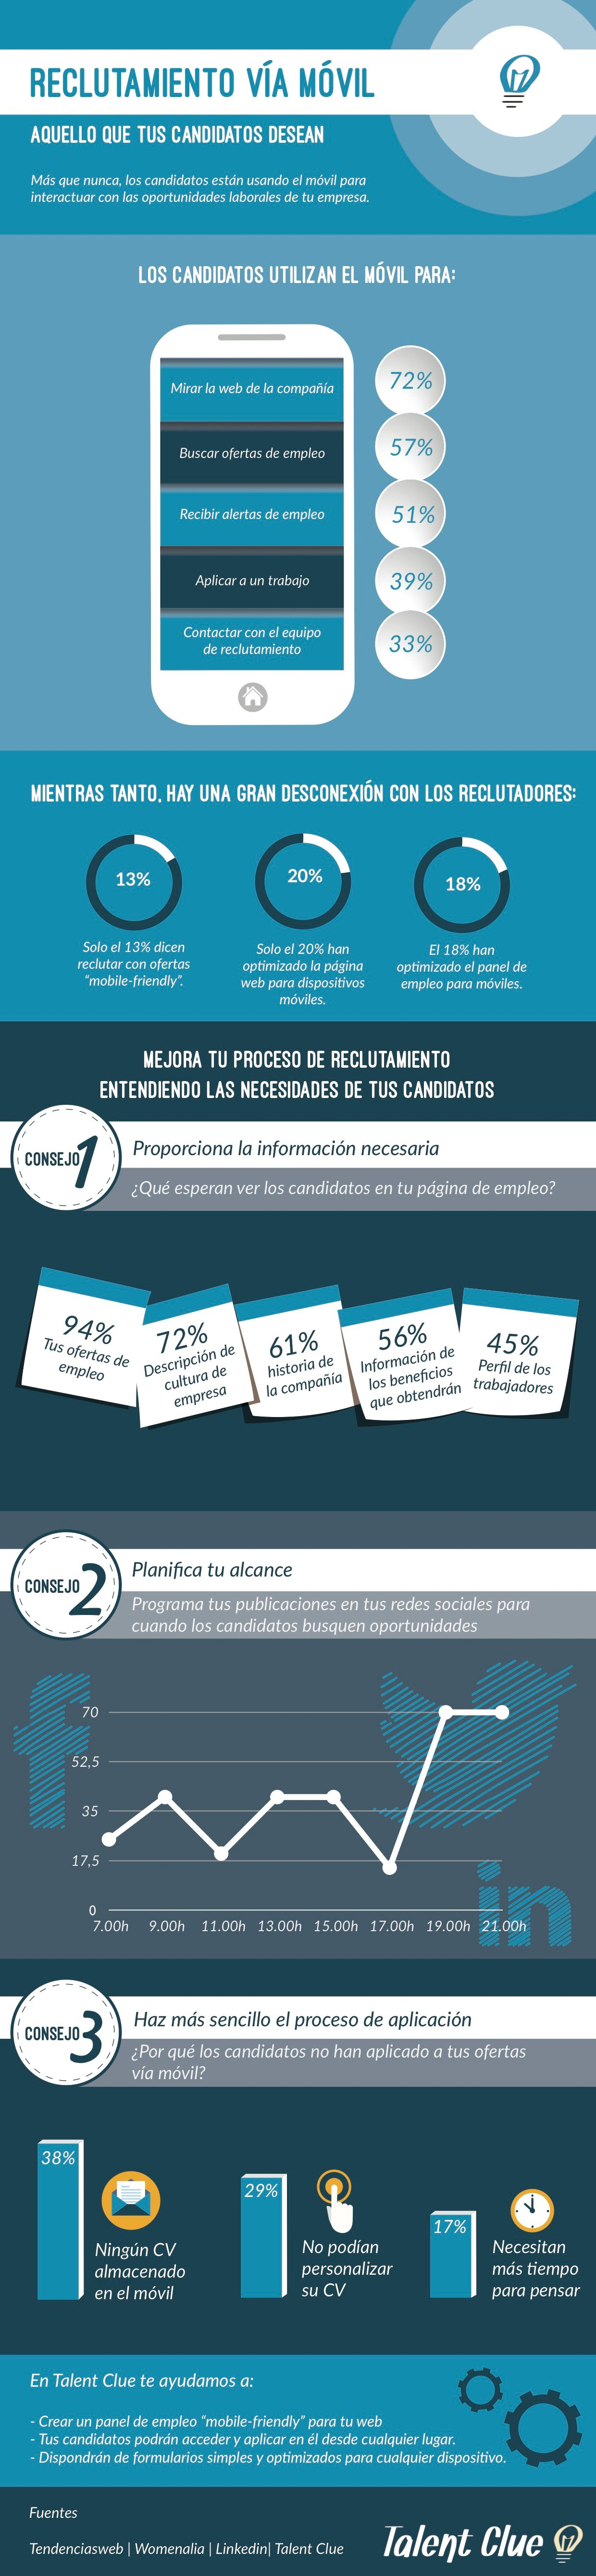 INFOGRAFIA_RECLUTAMIENTO_VIA_MOVIL